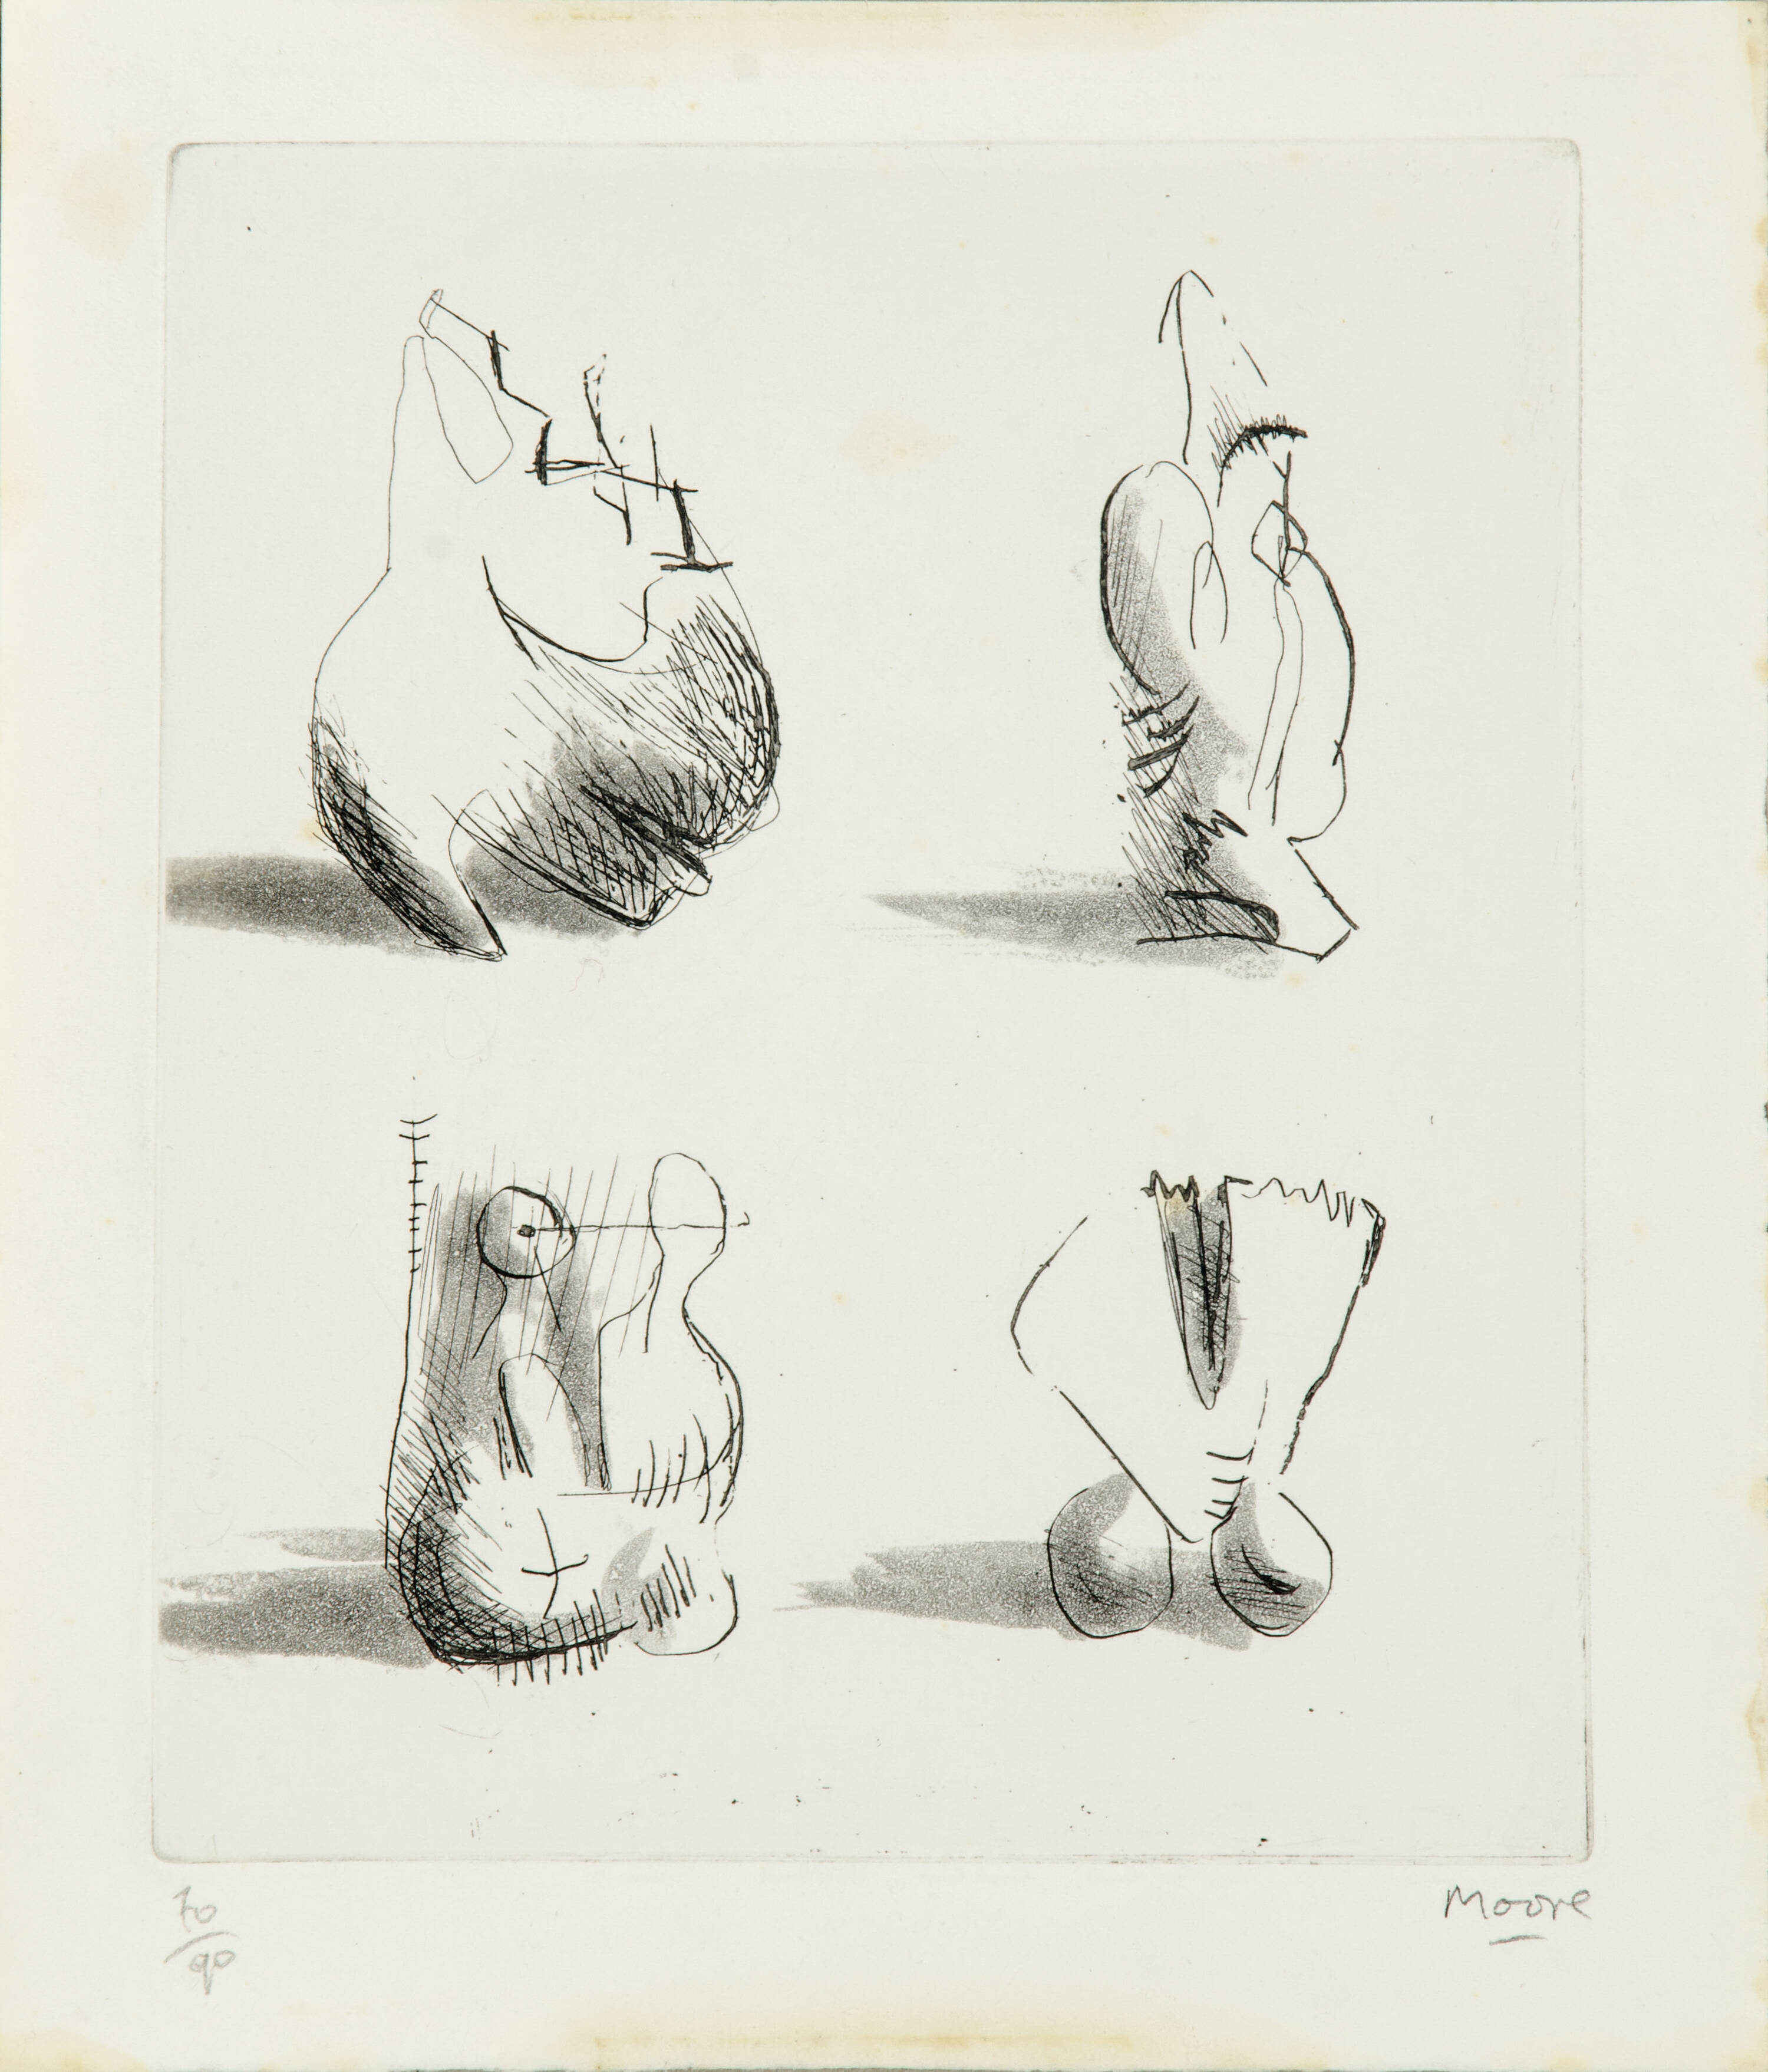 HENRY MOORE - 'Composizione'